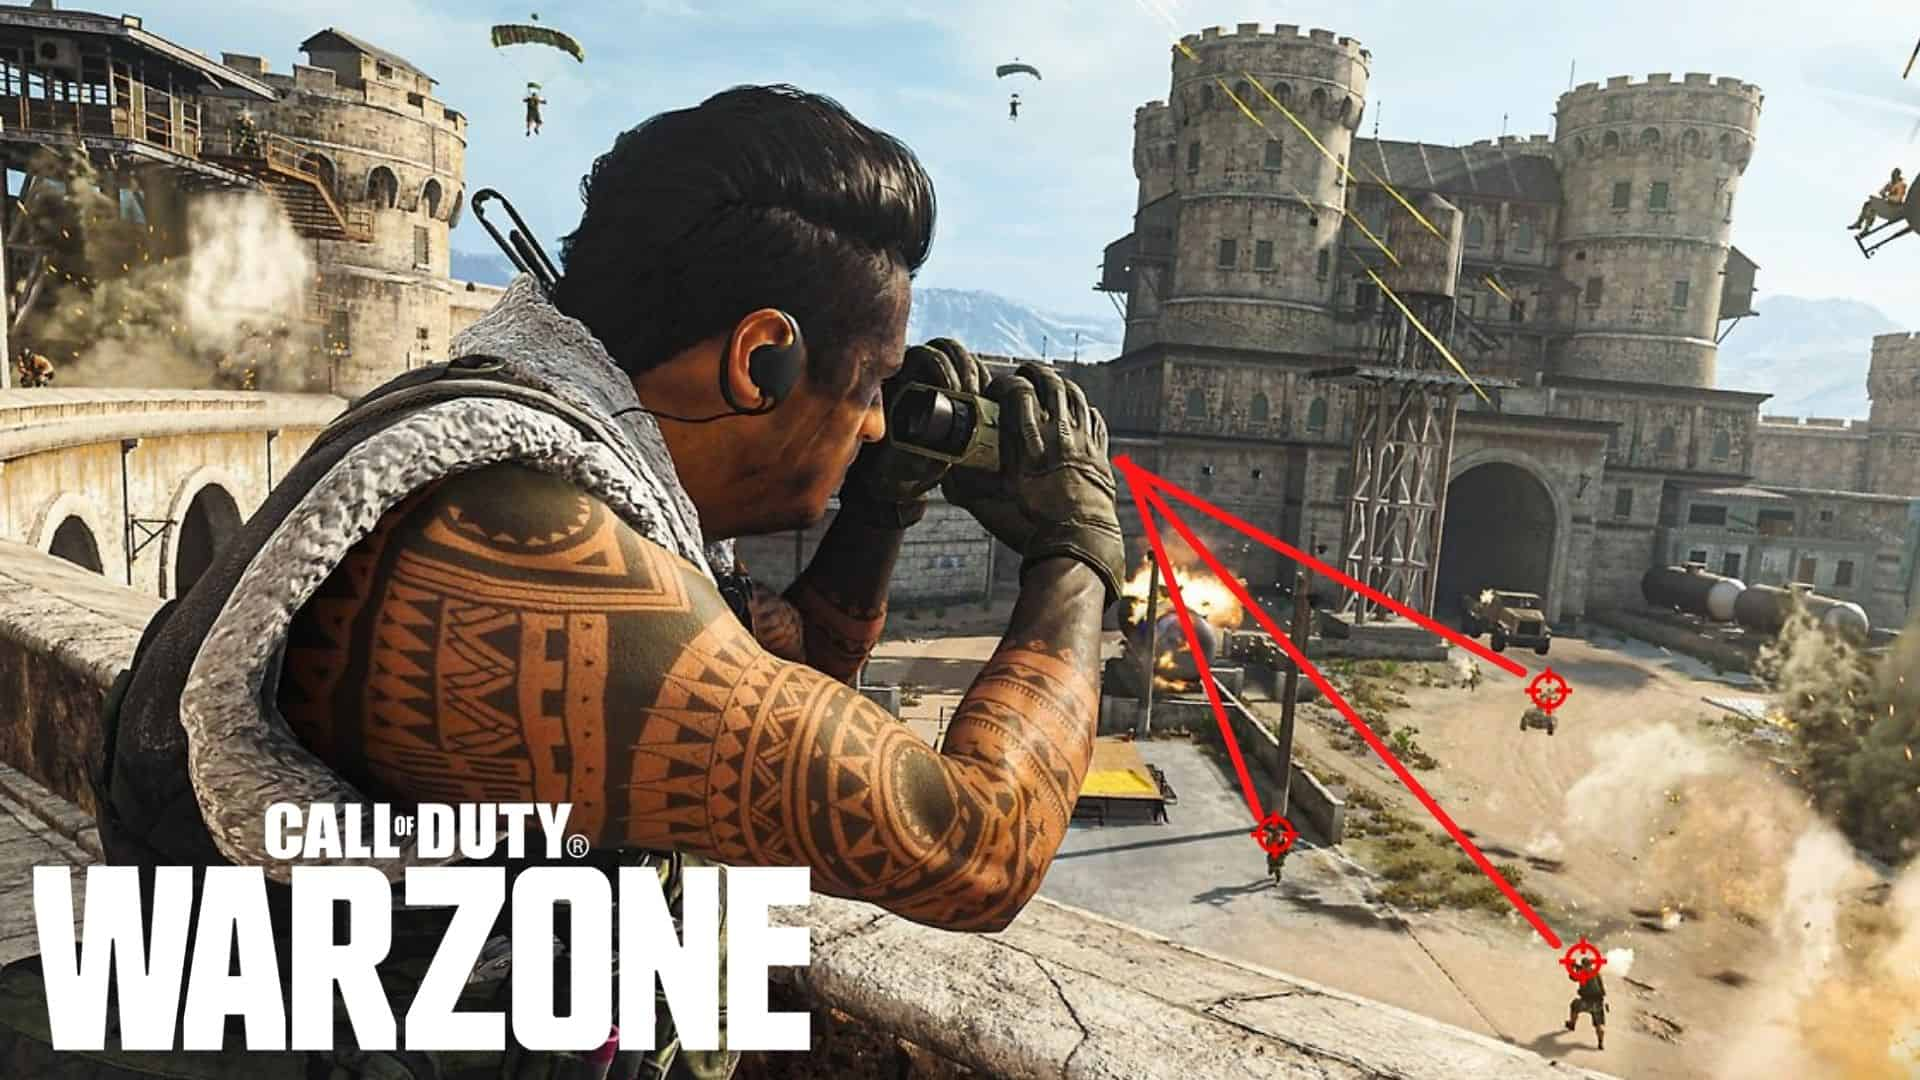 warzone hackers cheater cod